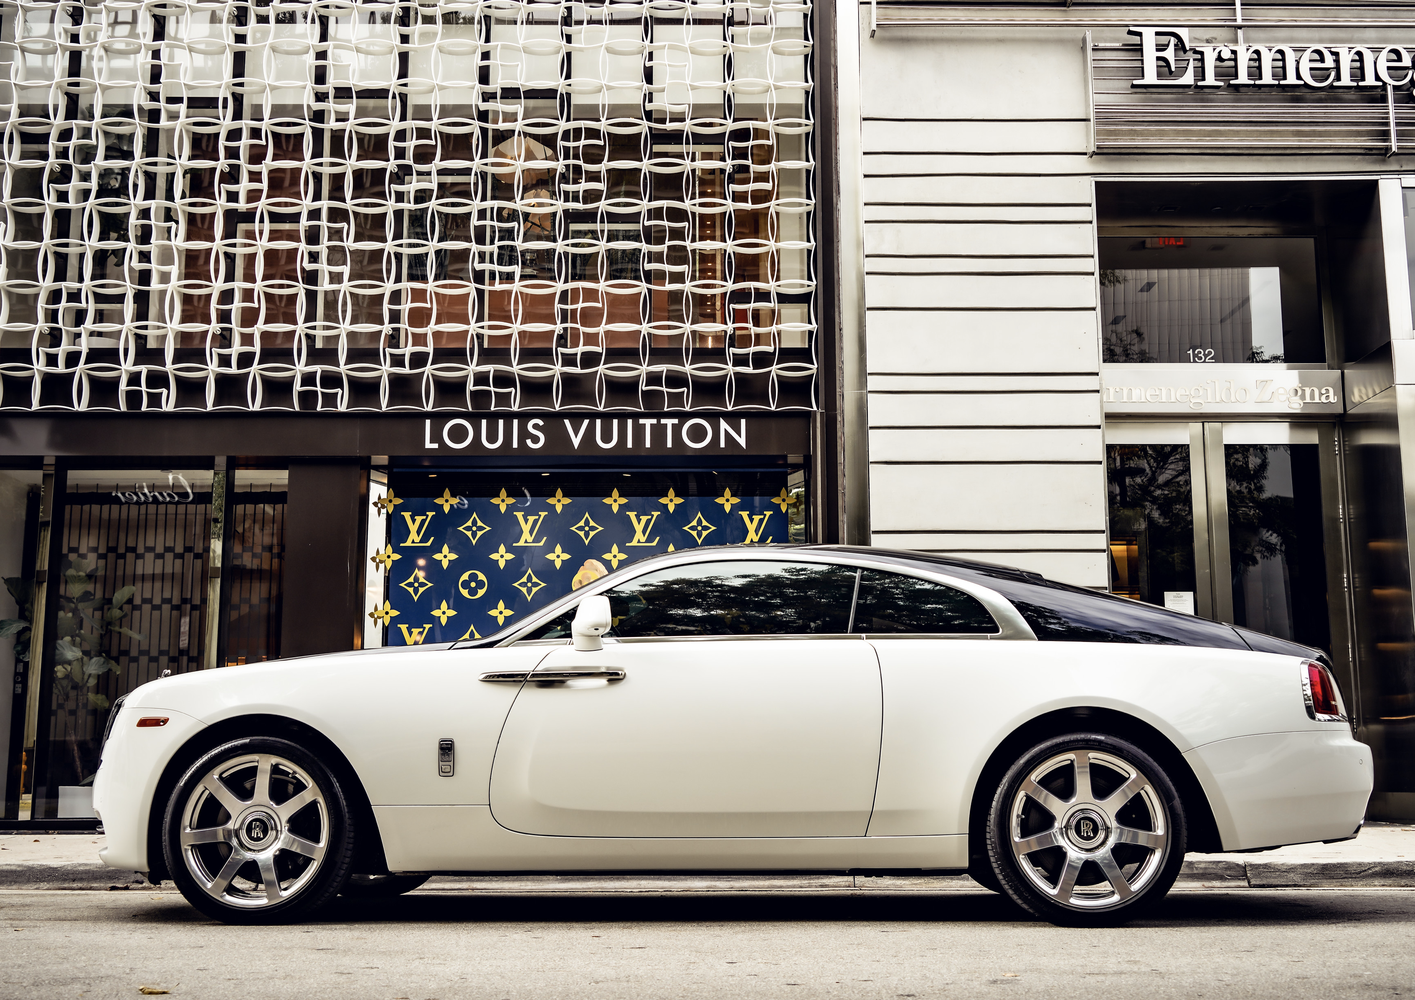 Image #1 of our  Rolls Royce Wraith    In Miami Fort Lauderdale Palm Beach South Florida